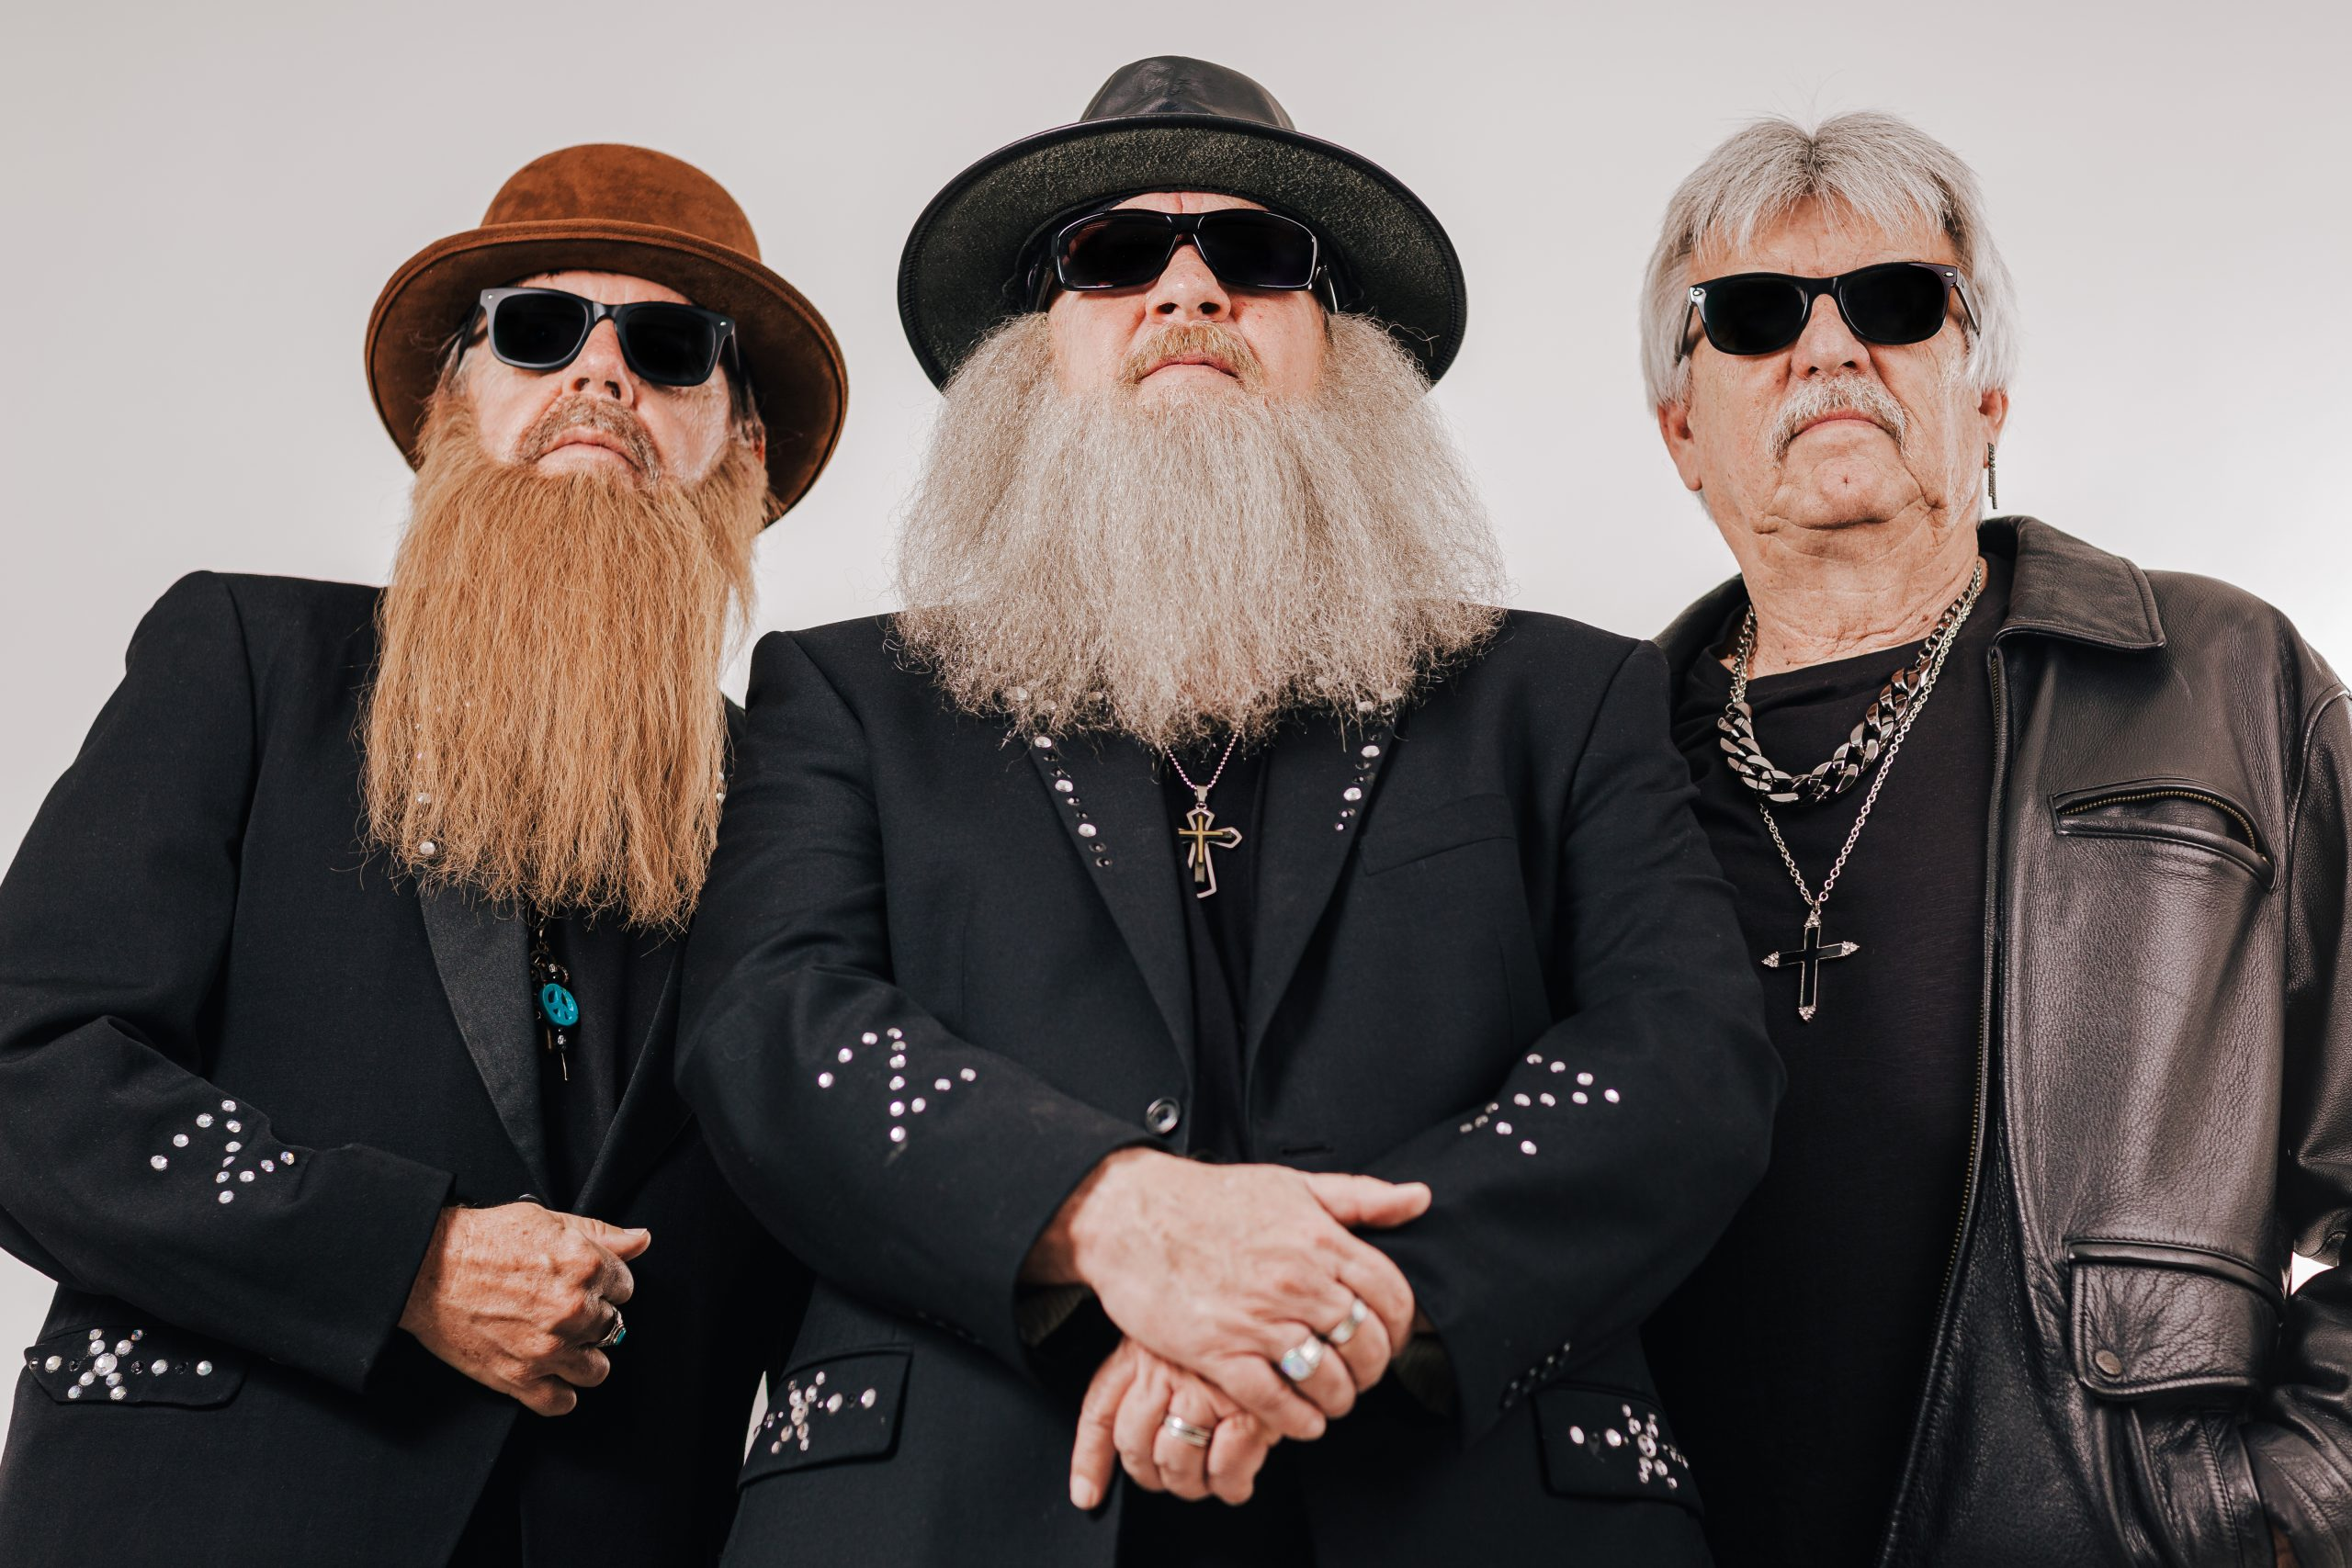 zz top cover band promo photo